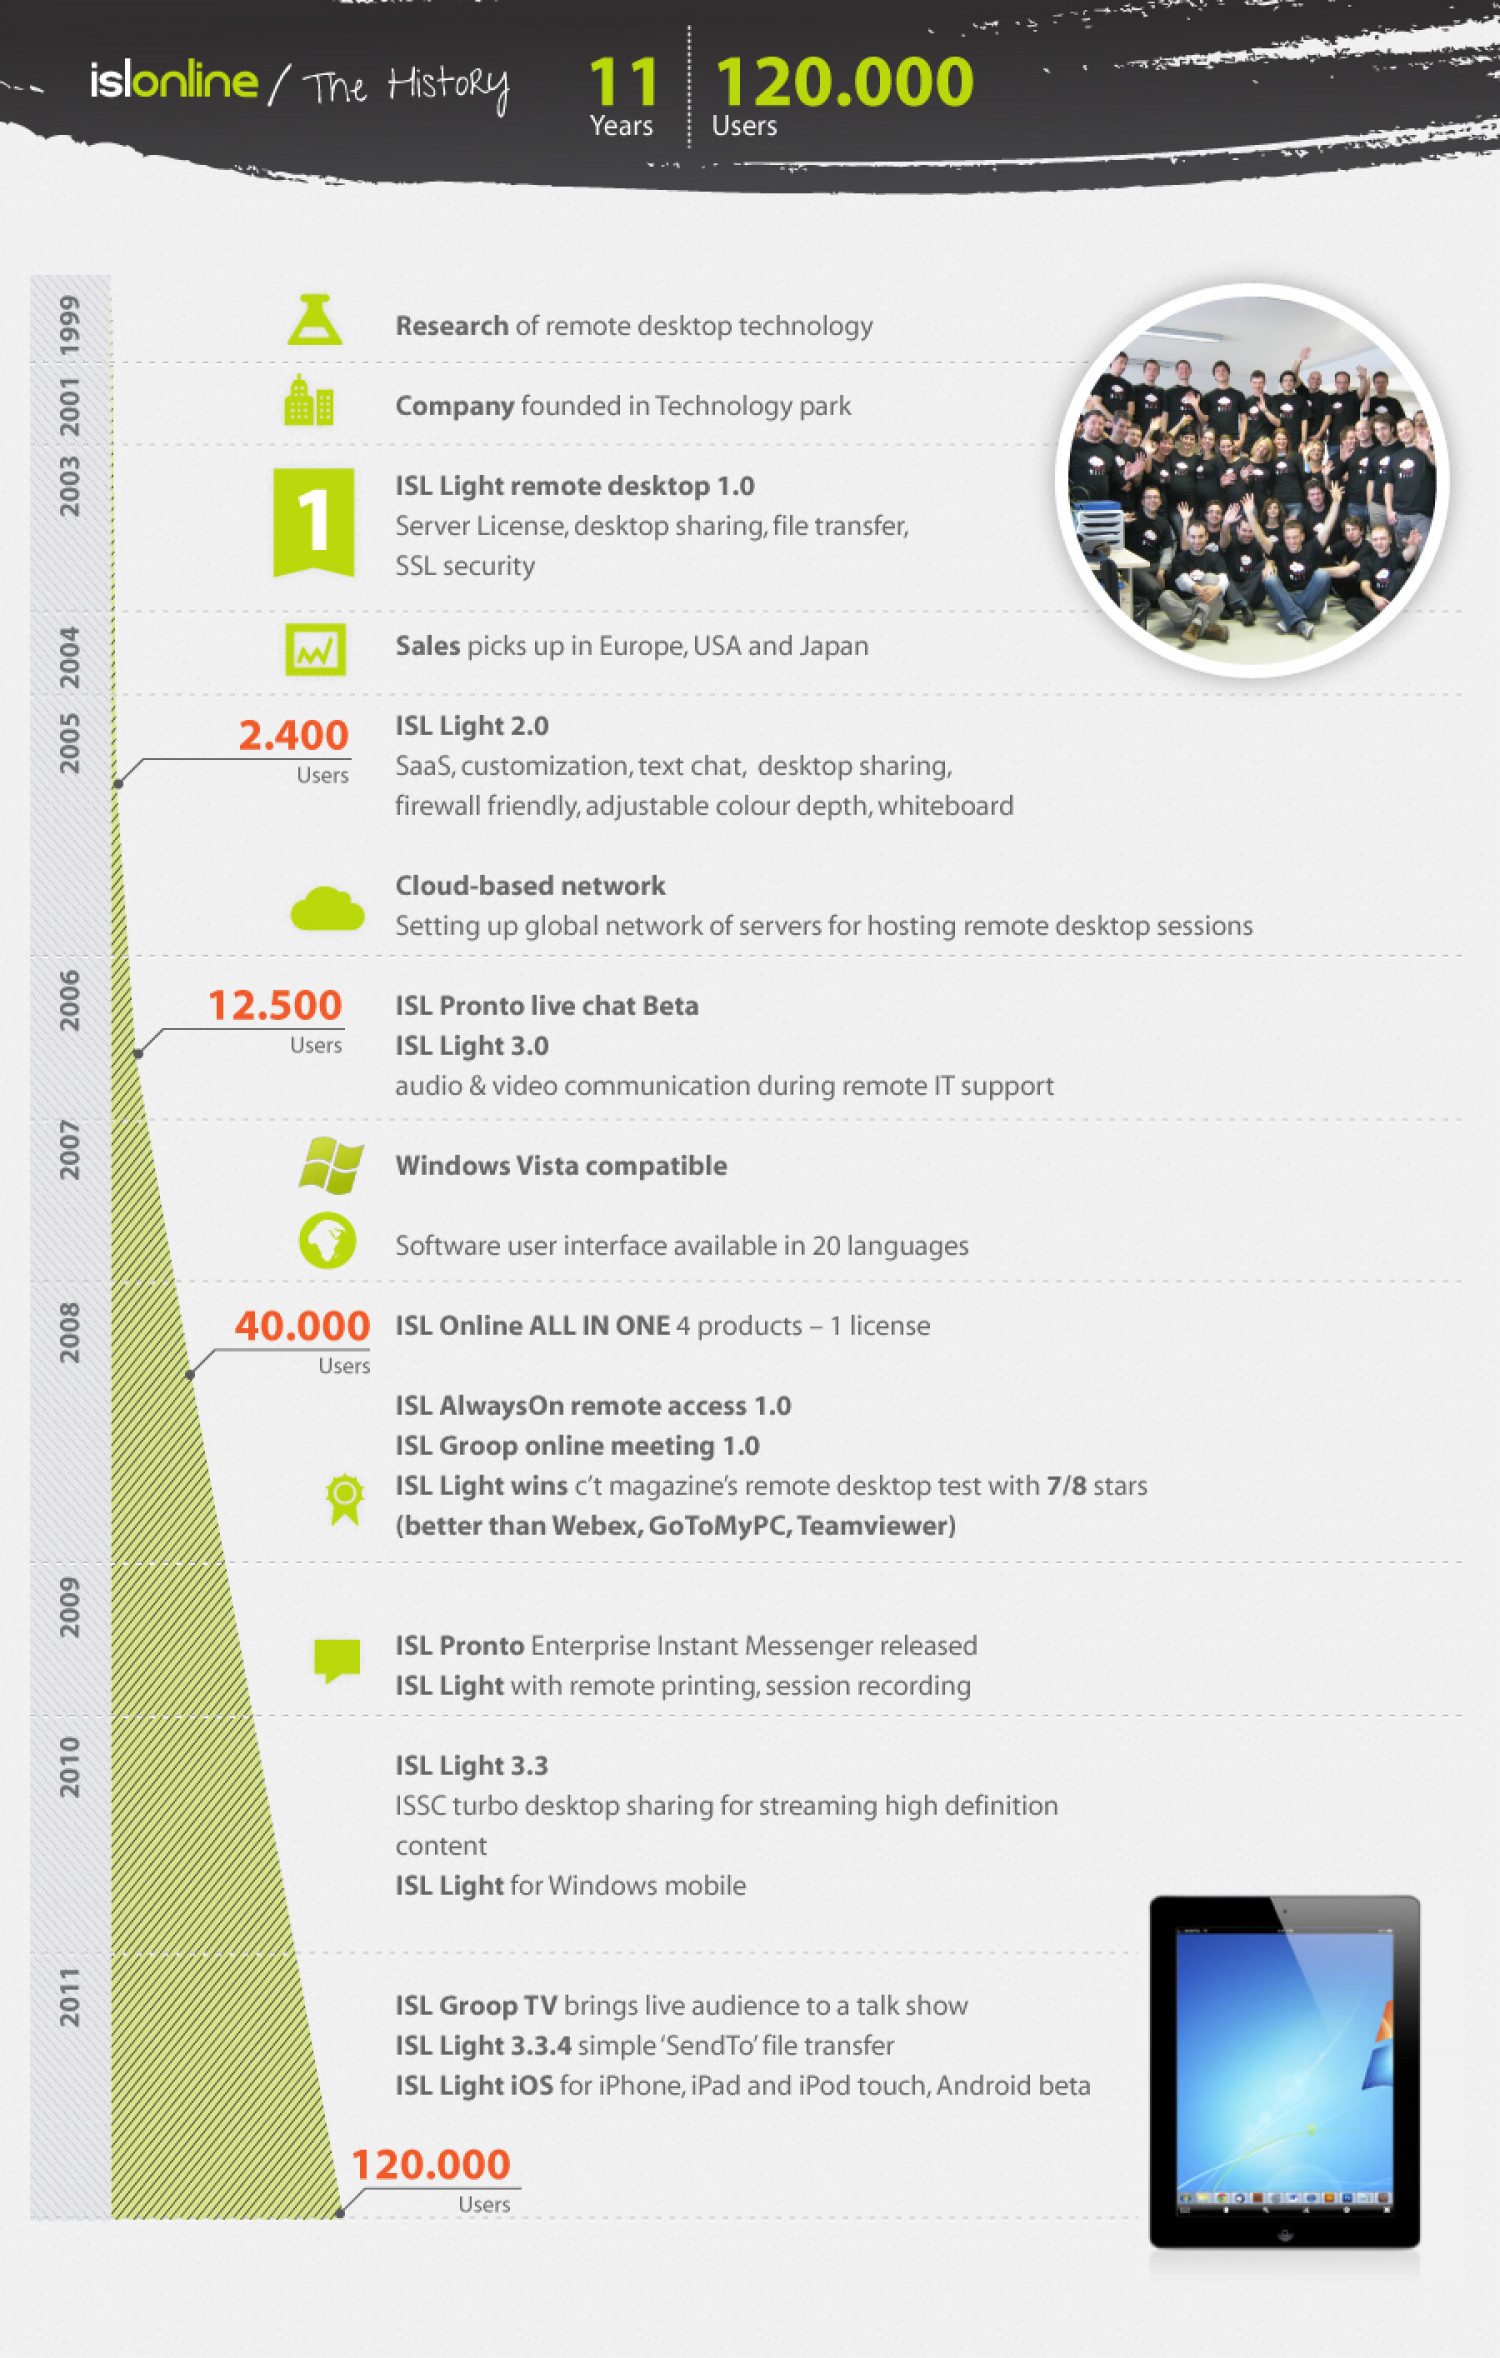 ISL Light Remote Desktop Evolution Infographic